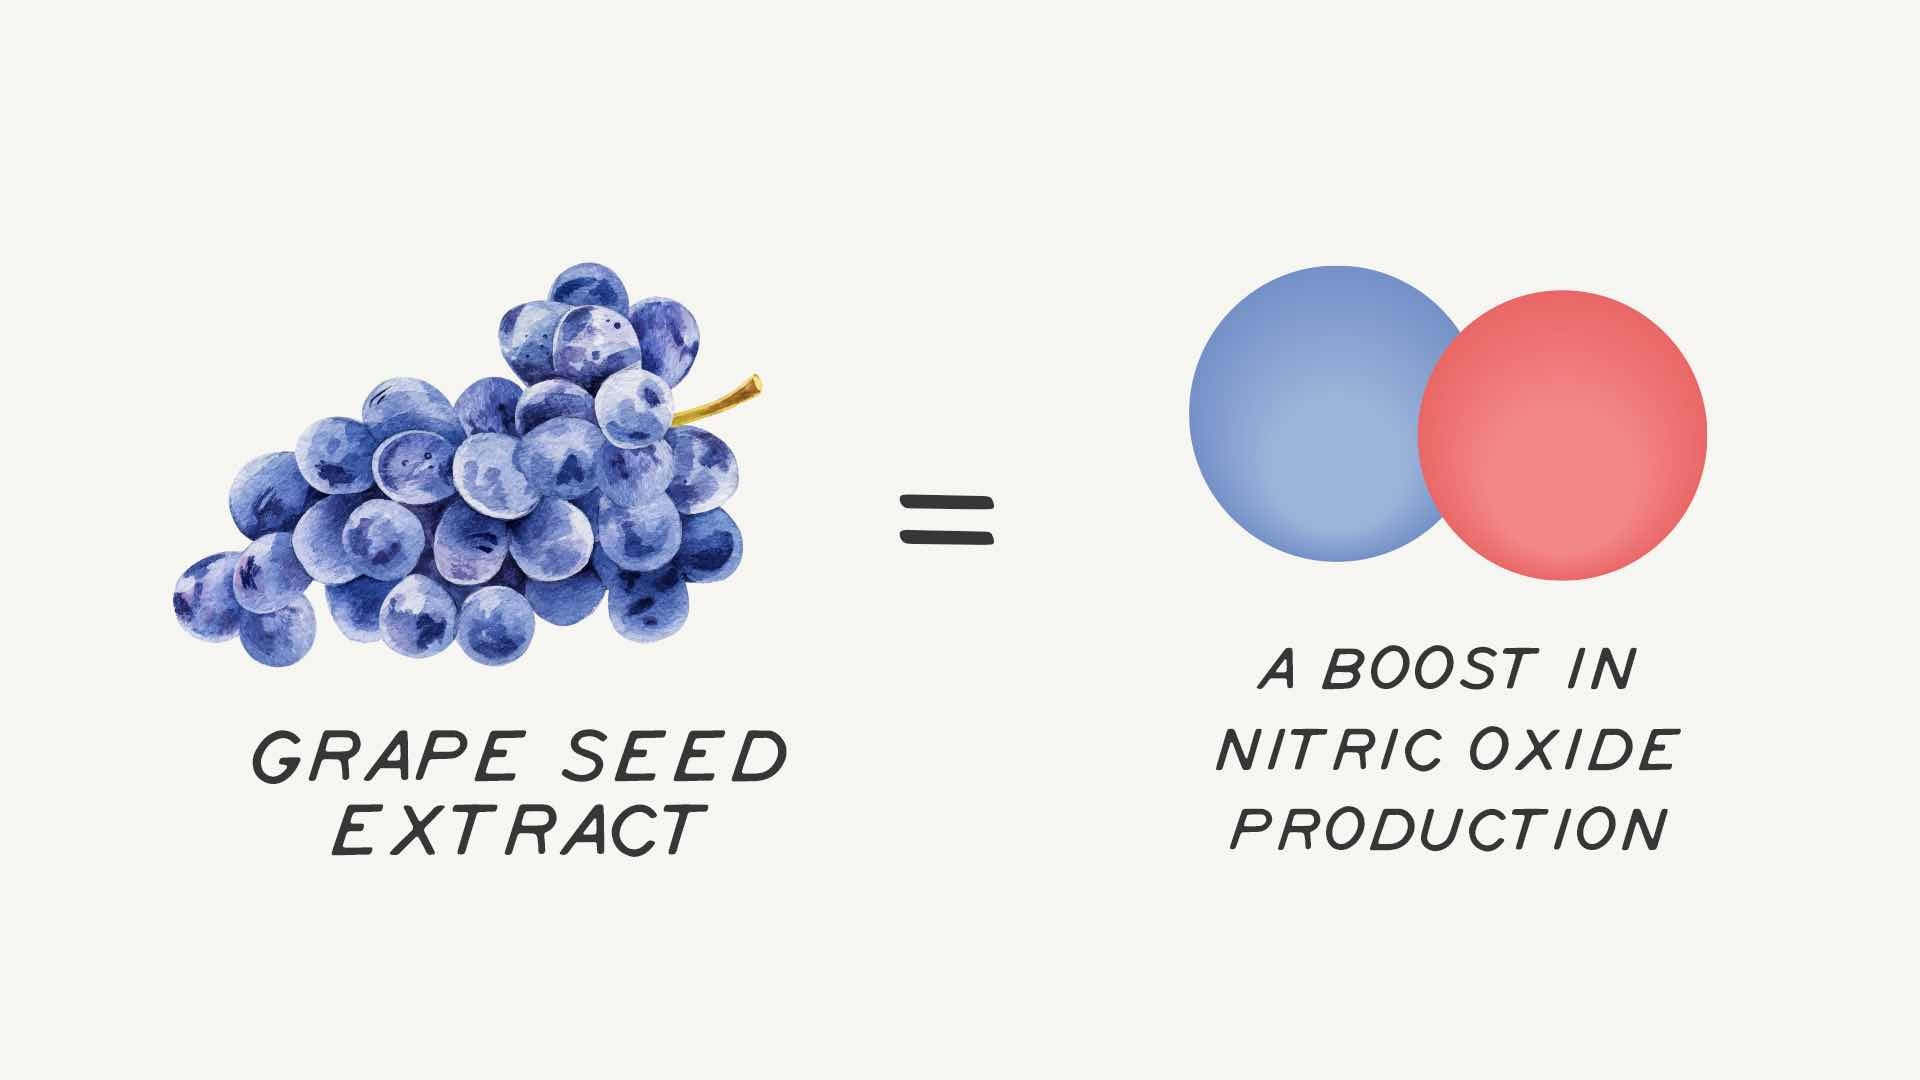 GRape seed extract and blood flow